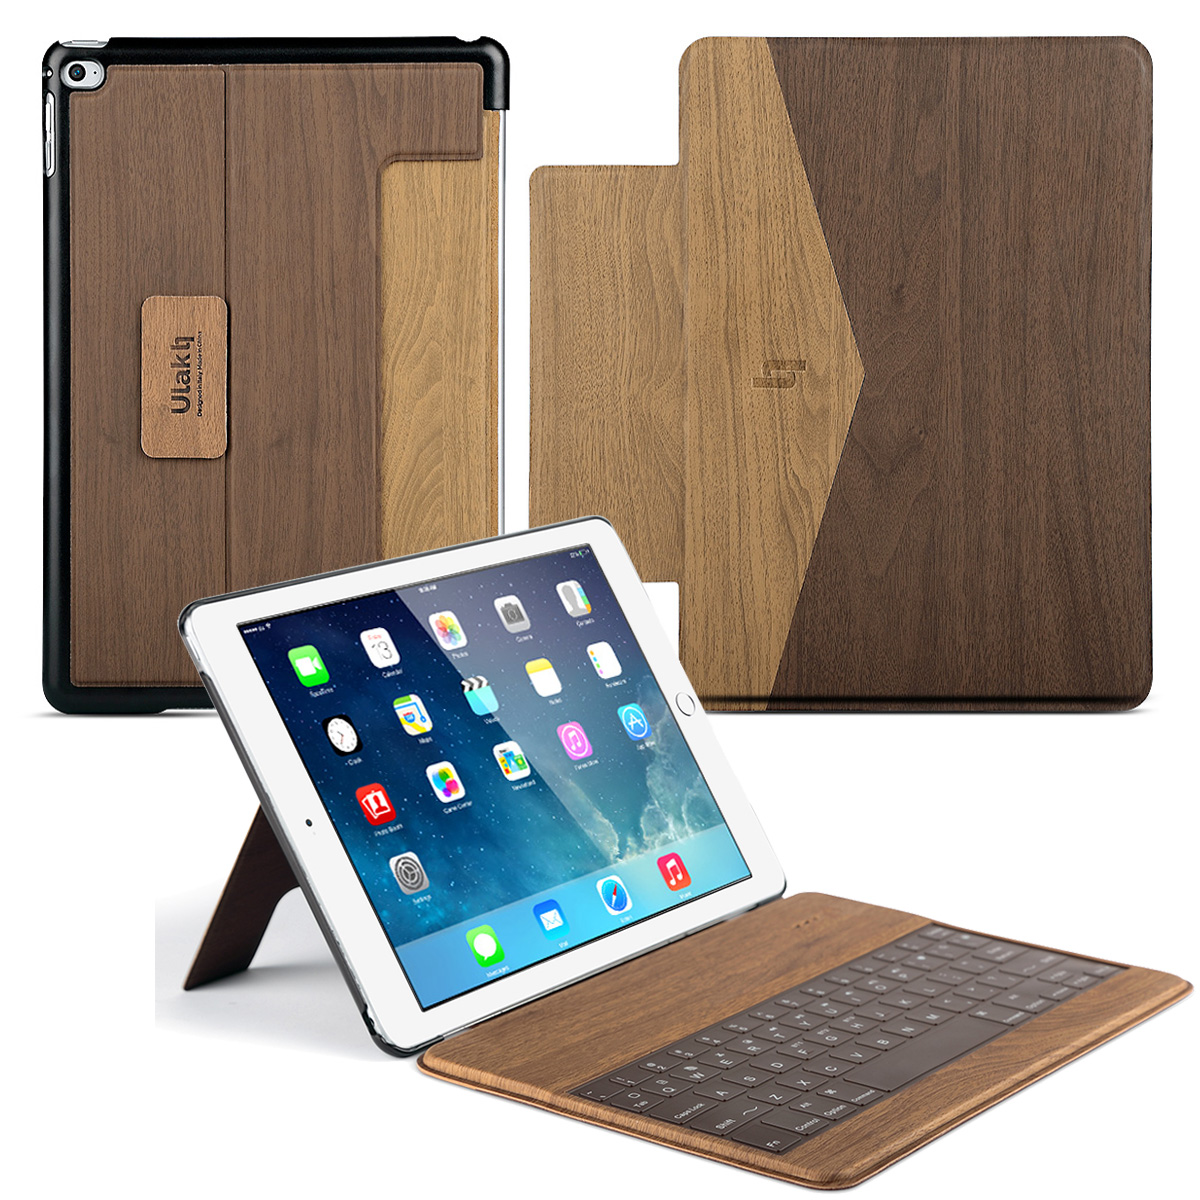 Best Buy Ipad Stand With Cute Rocketfish Acessories Design: Ultra Slim Magnetic Leather Smart Cover Case Stand For Apple IPad Air 2